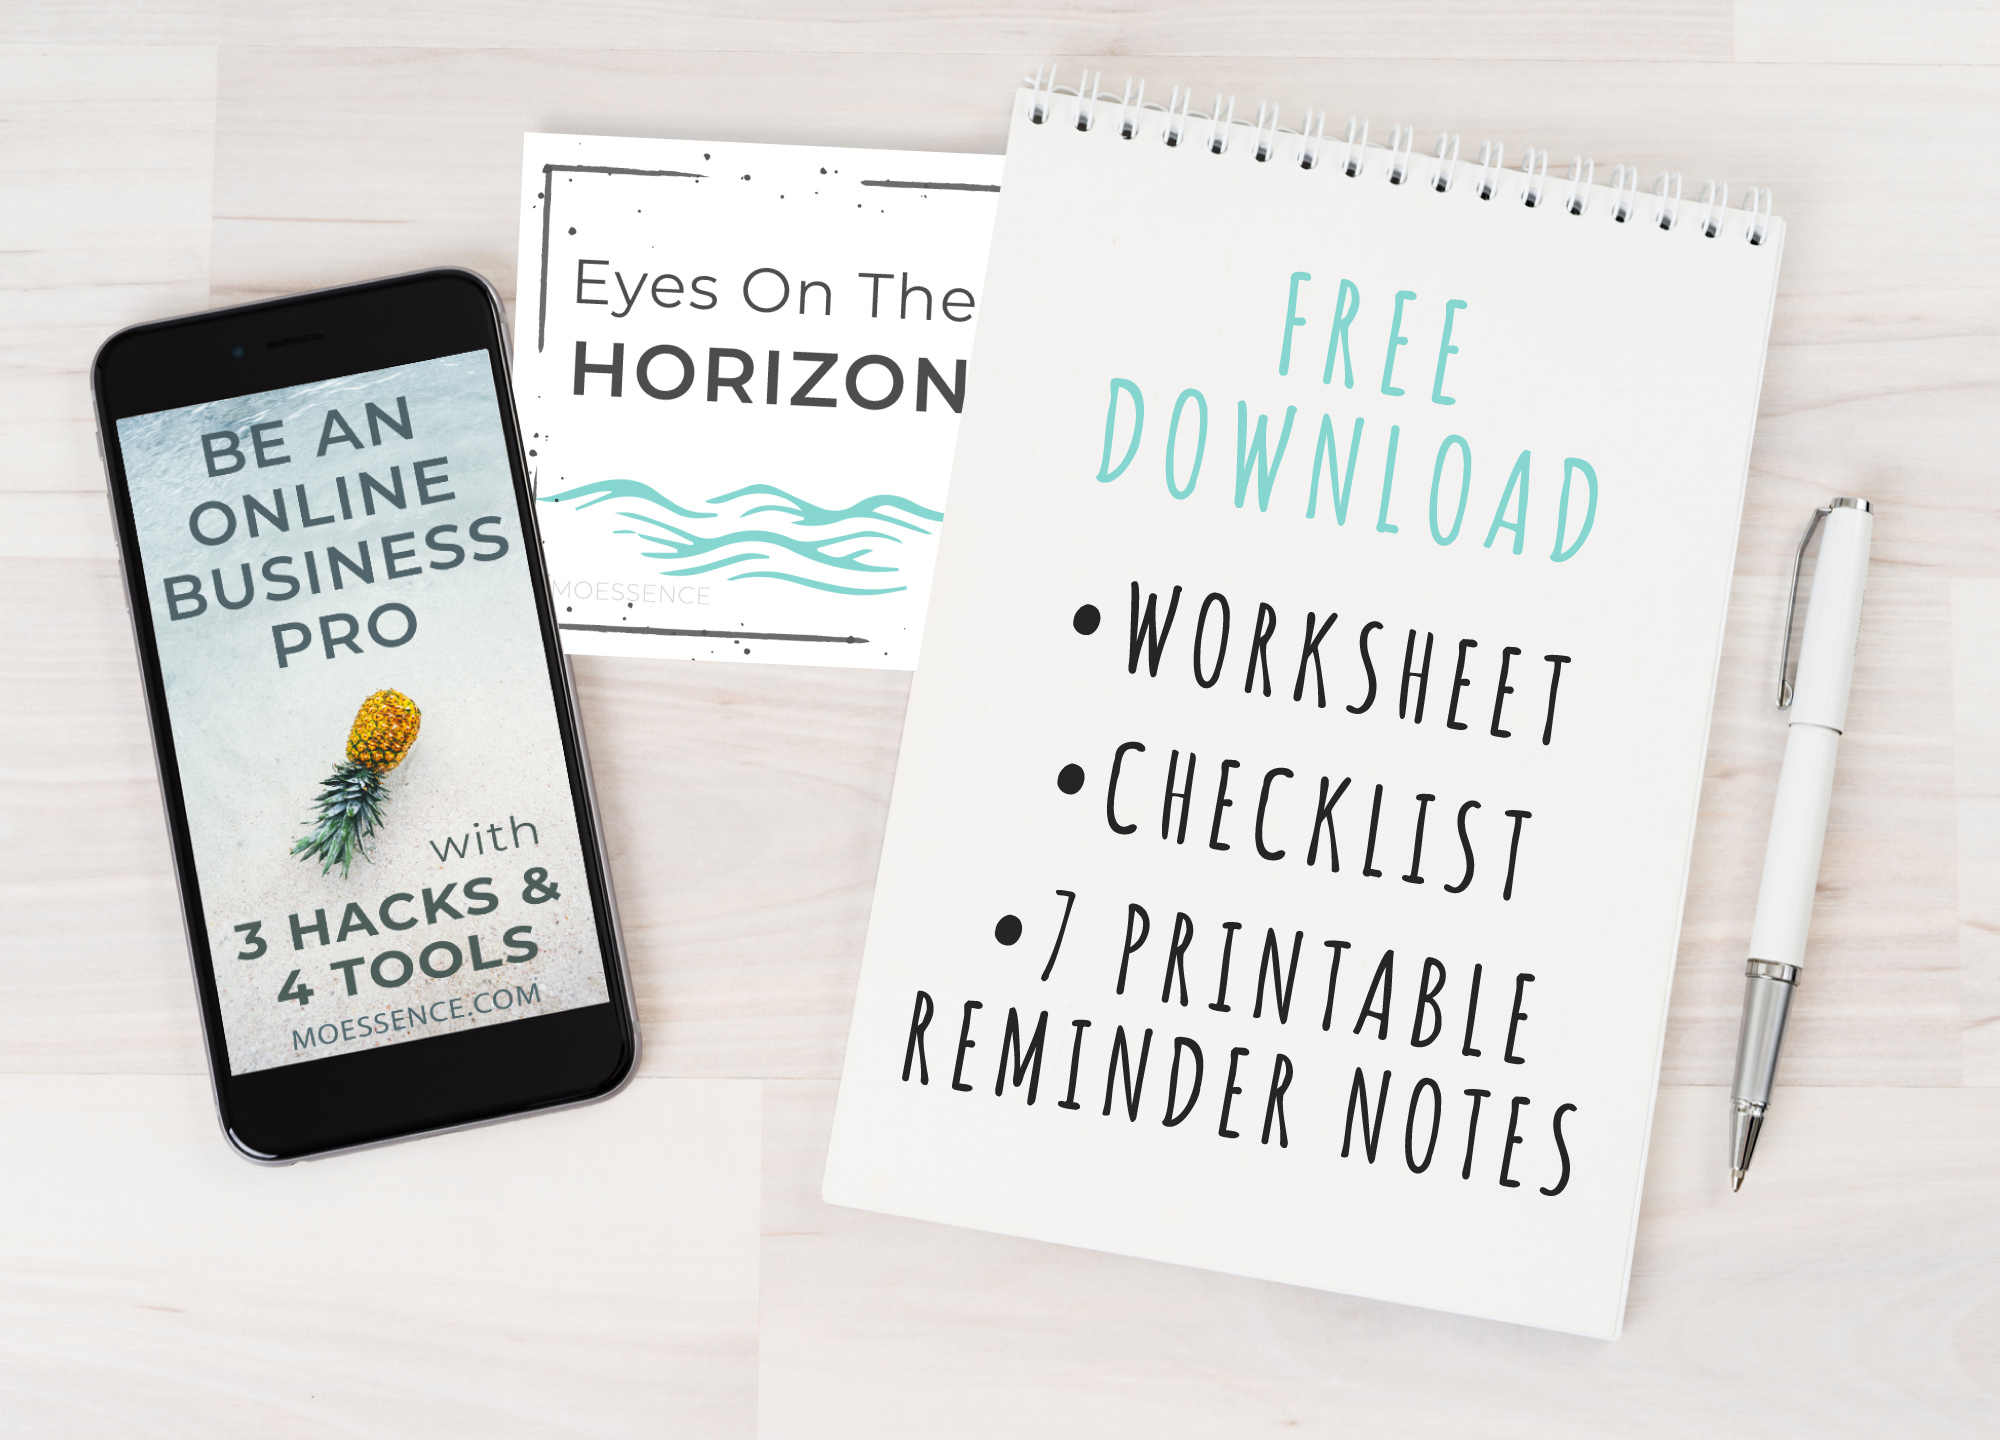 3 HACKS & 4 TOOLS - I have found real business magic!The 7 most powerful tools and real strategies to fast track your business and dreams.Your goals won't be on the sidelines any longer. Get more done. Feel less overwhelmed and stressed. Feel like a professional - and like a real grown up.